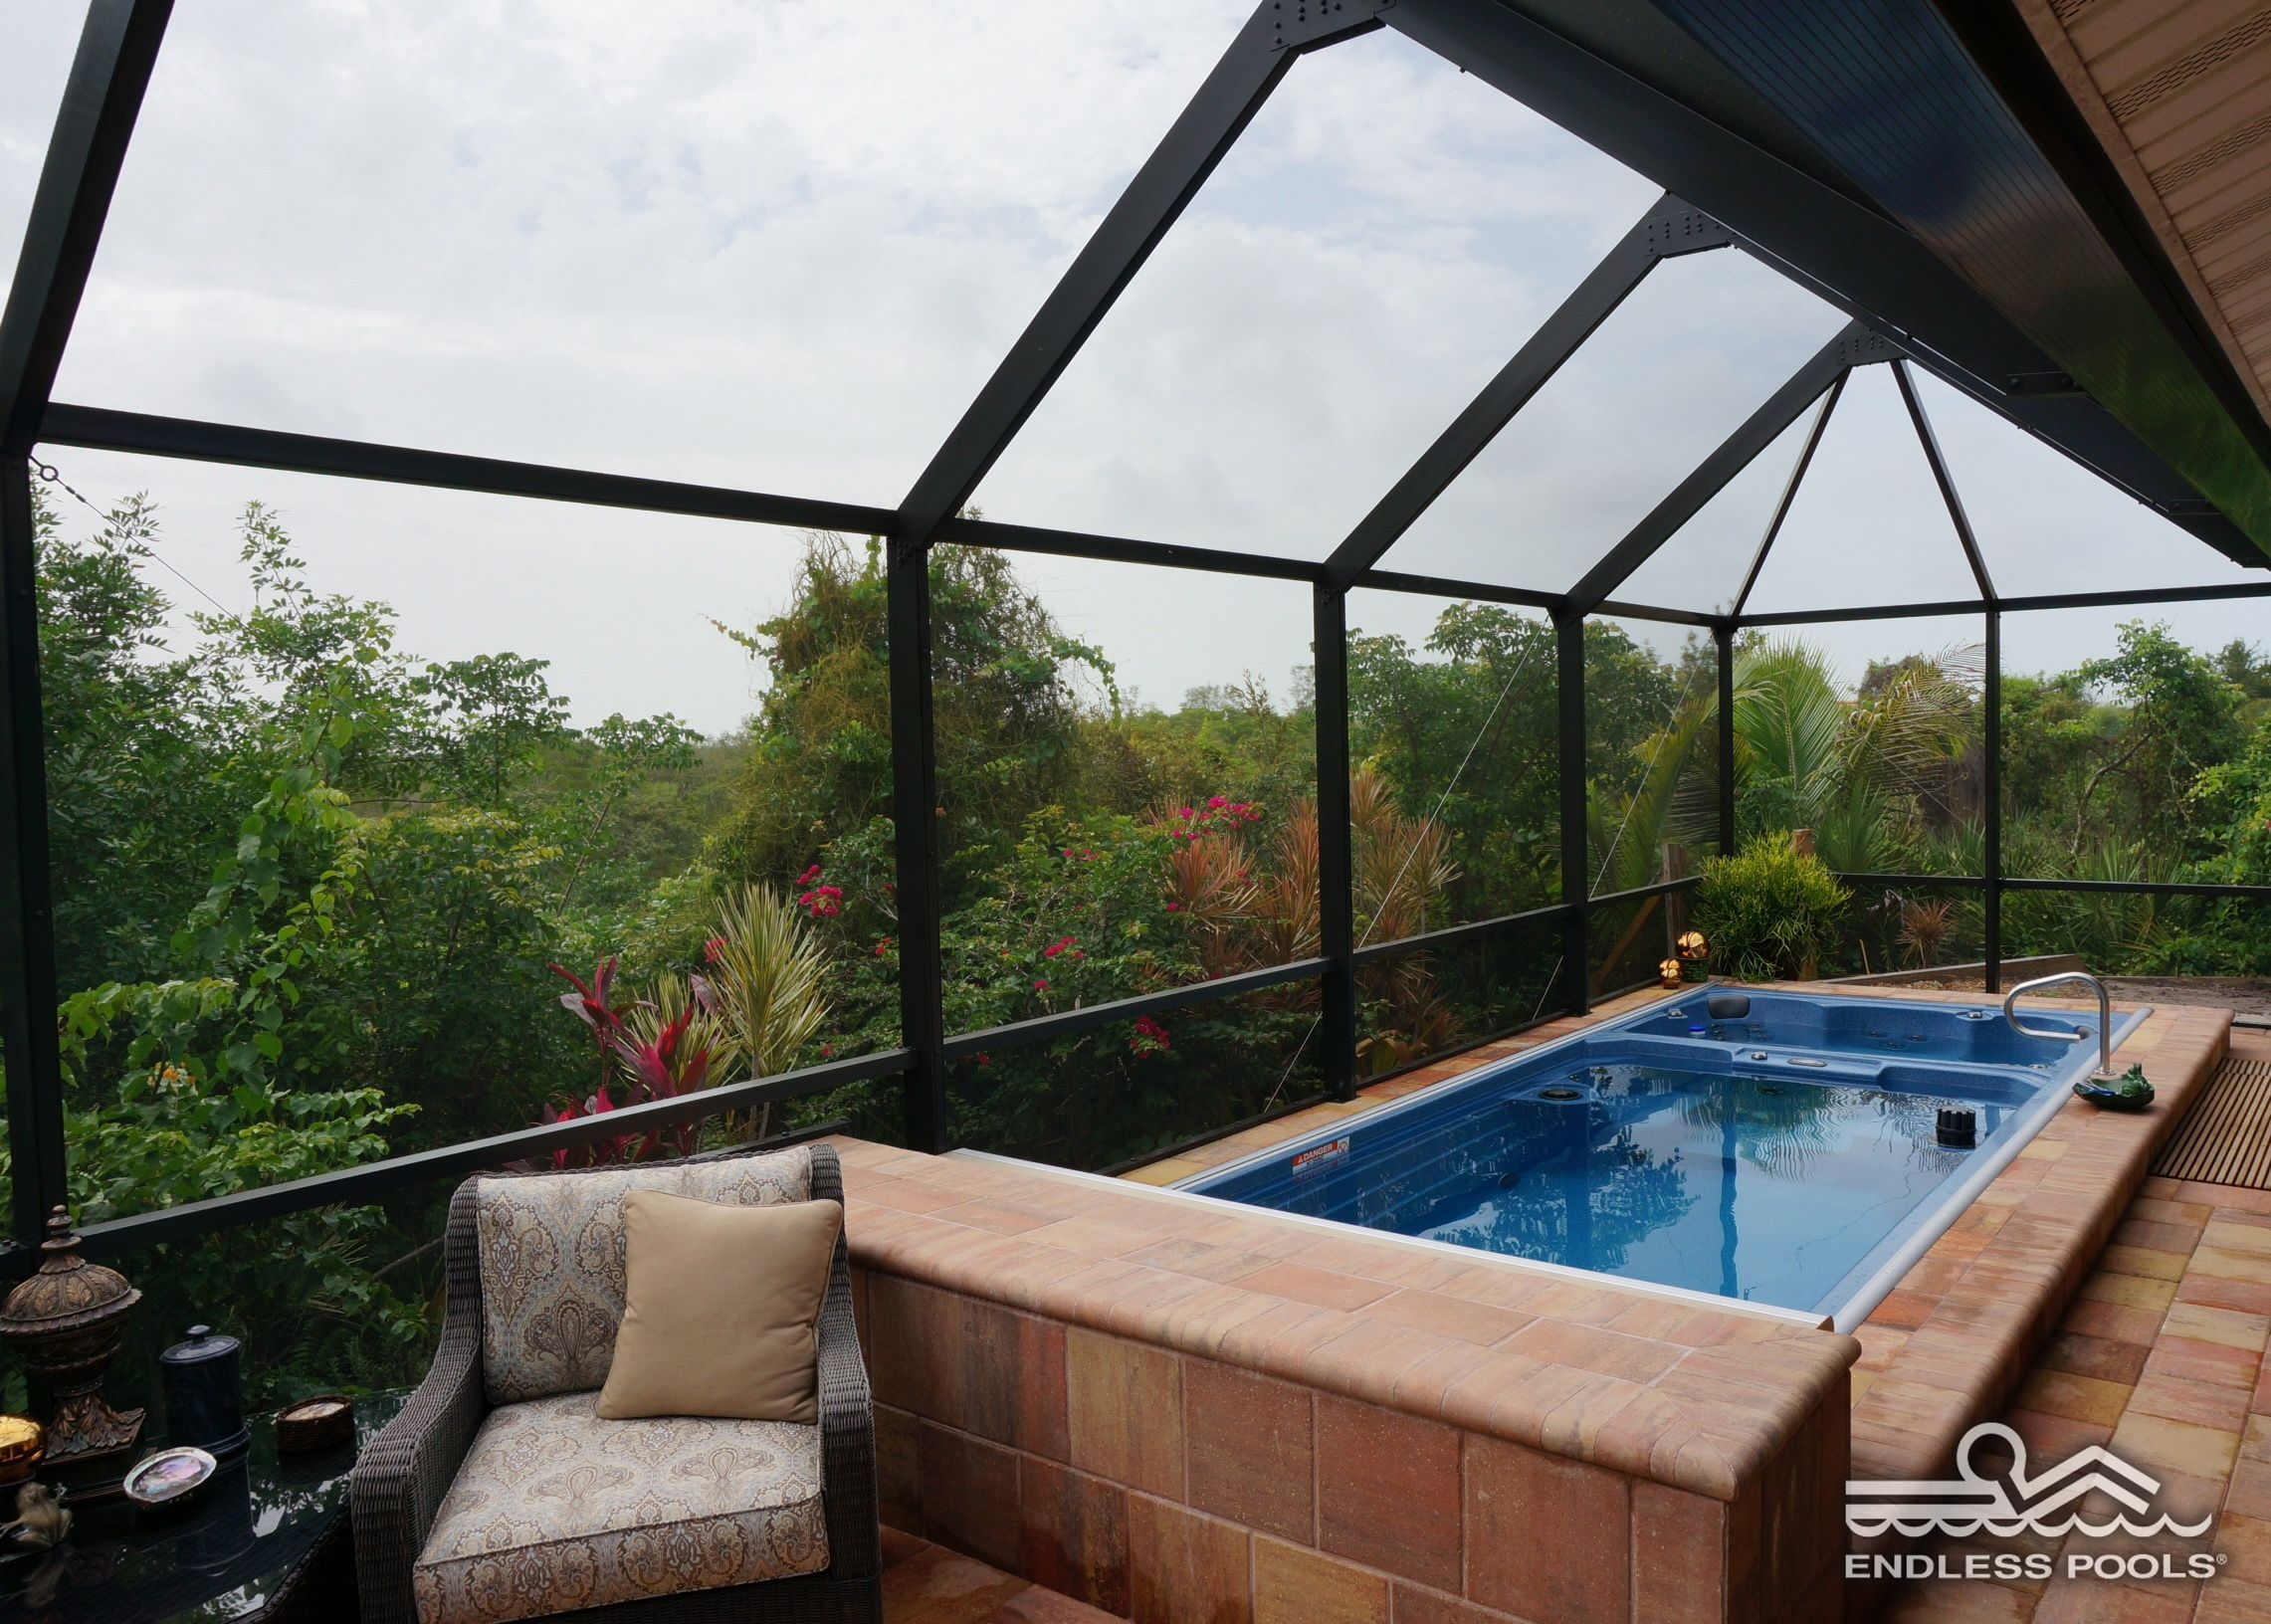 Jacuzzi Endless Pool With A 19 39 Dual Temperature Swim Spa You Can Enjoy